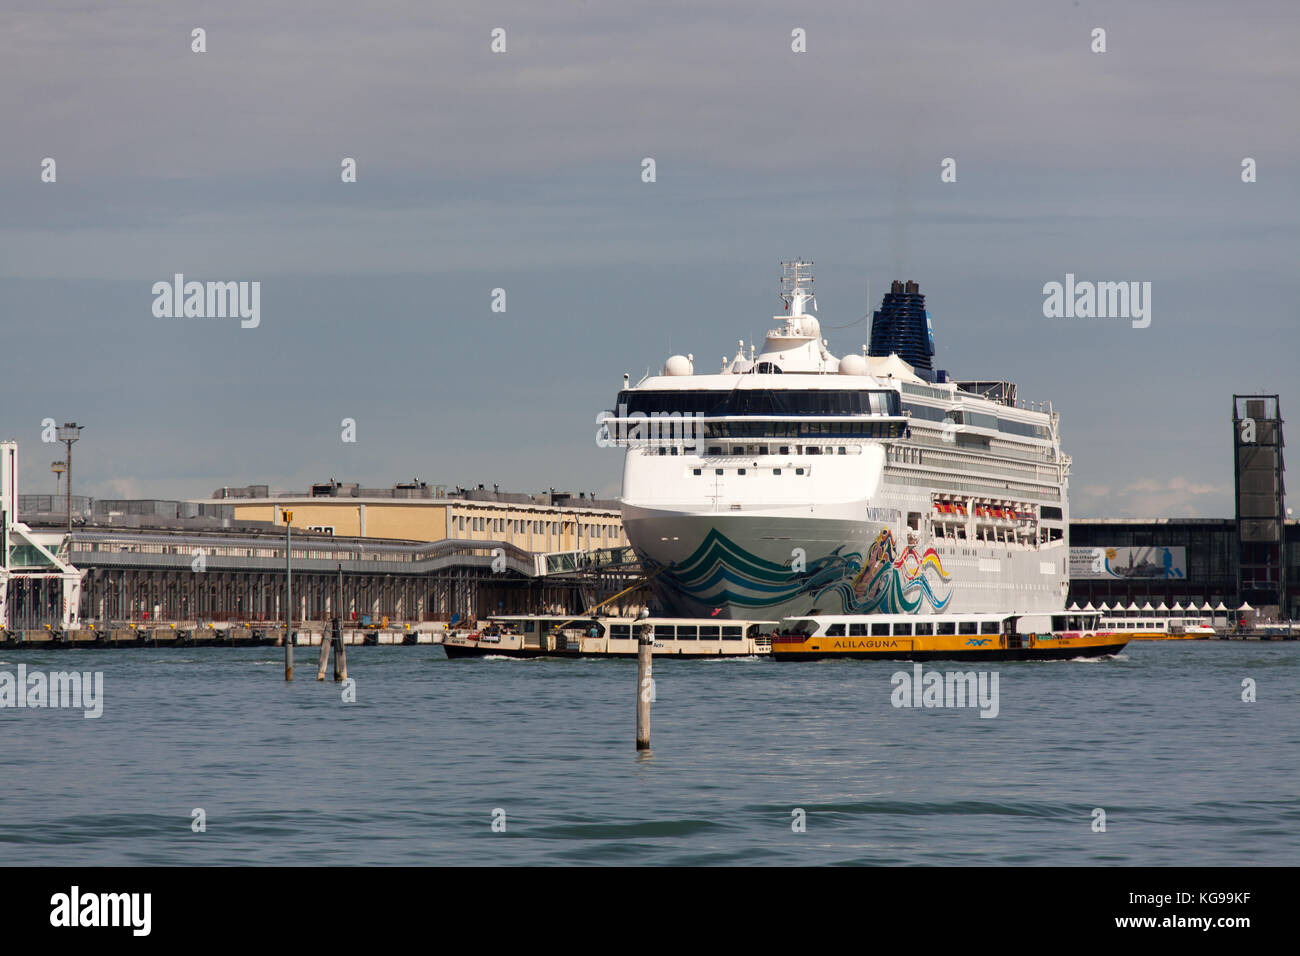 City of Venice Italy. Picturesque view of the Fusina Canal with the Norwegian Spirit berthed at the Venice Cruise Stock Photo